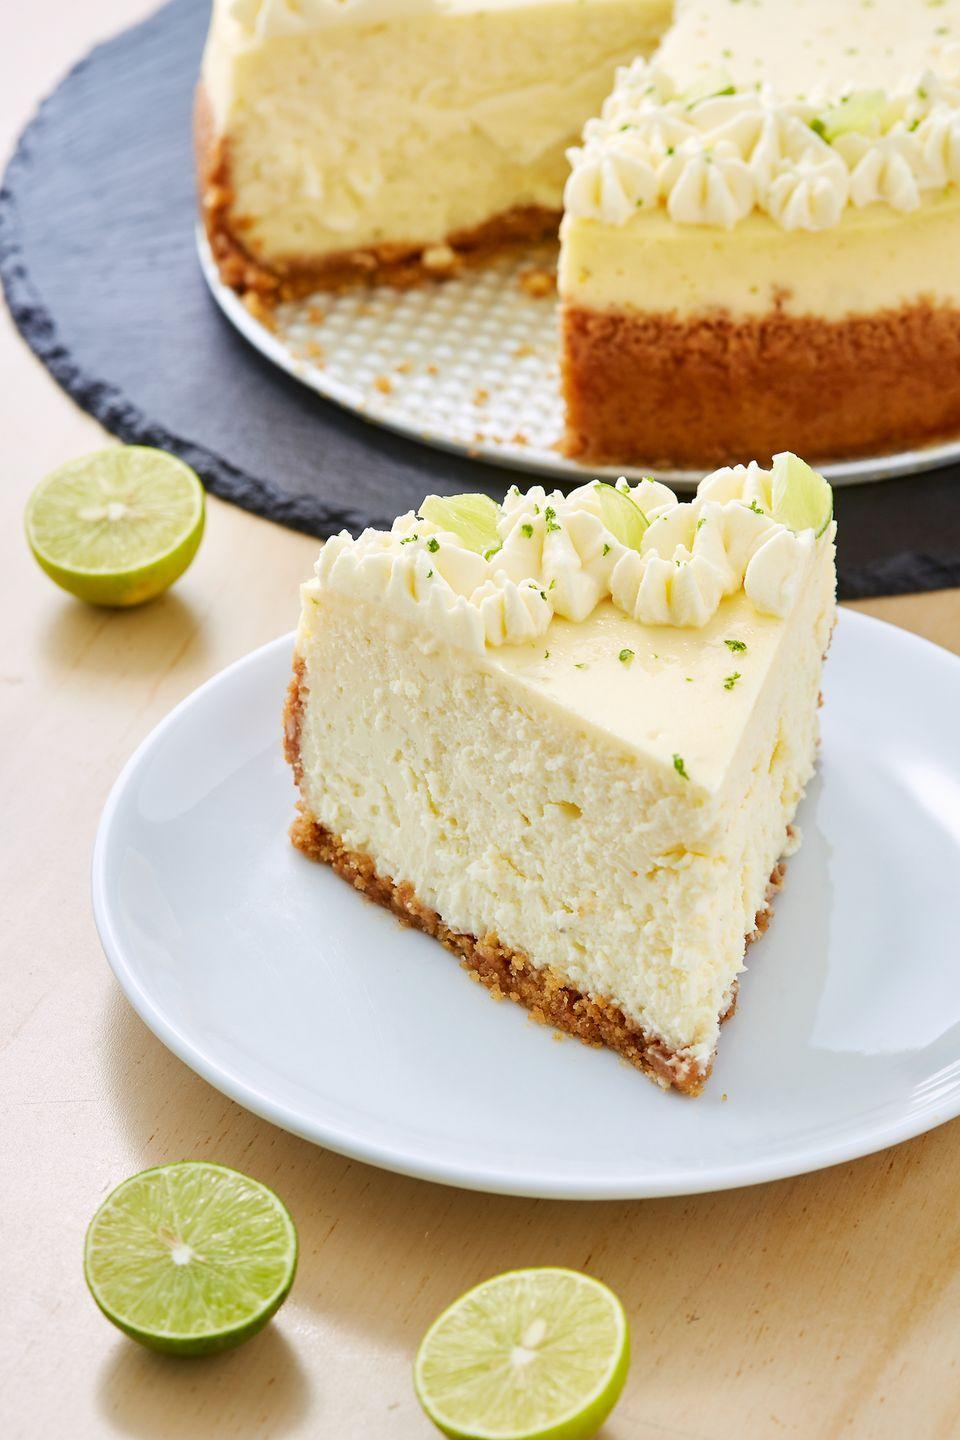 """<p>Cheesecake > pie. Always.<br></p><p>Get the recipe from <a href=""""https://www.delish.com/cooking/recipe-ideas/a28556089/key-lime-cheesecake-recipe/"""" rel=""""nofollow noopener"""" target=""""_blank"""" data-ylk=""""slk:Delish"""" class=""""link rapid-noclick-resp"""">Delish</a>. </p>"""